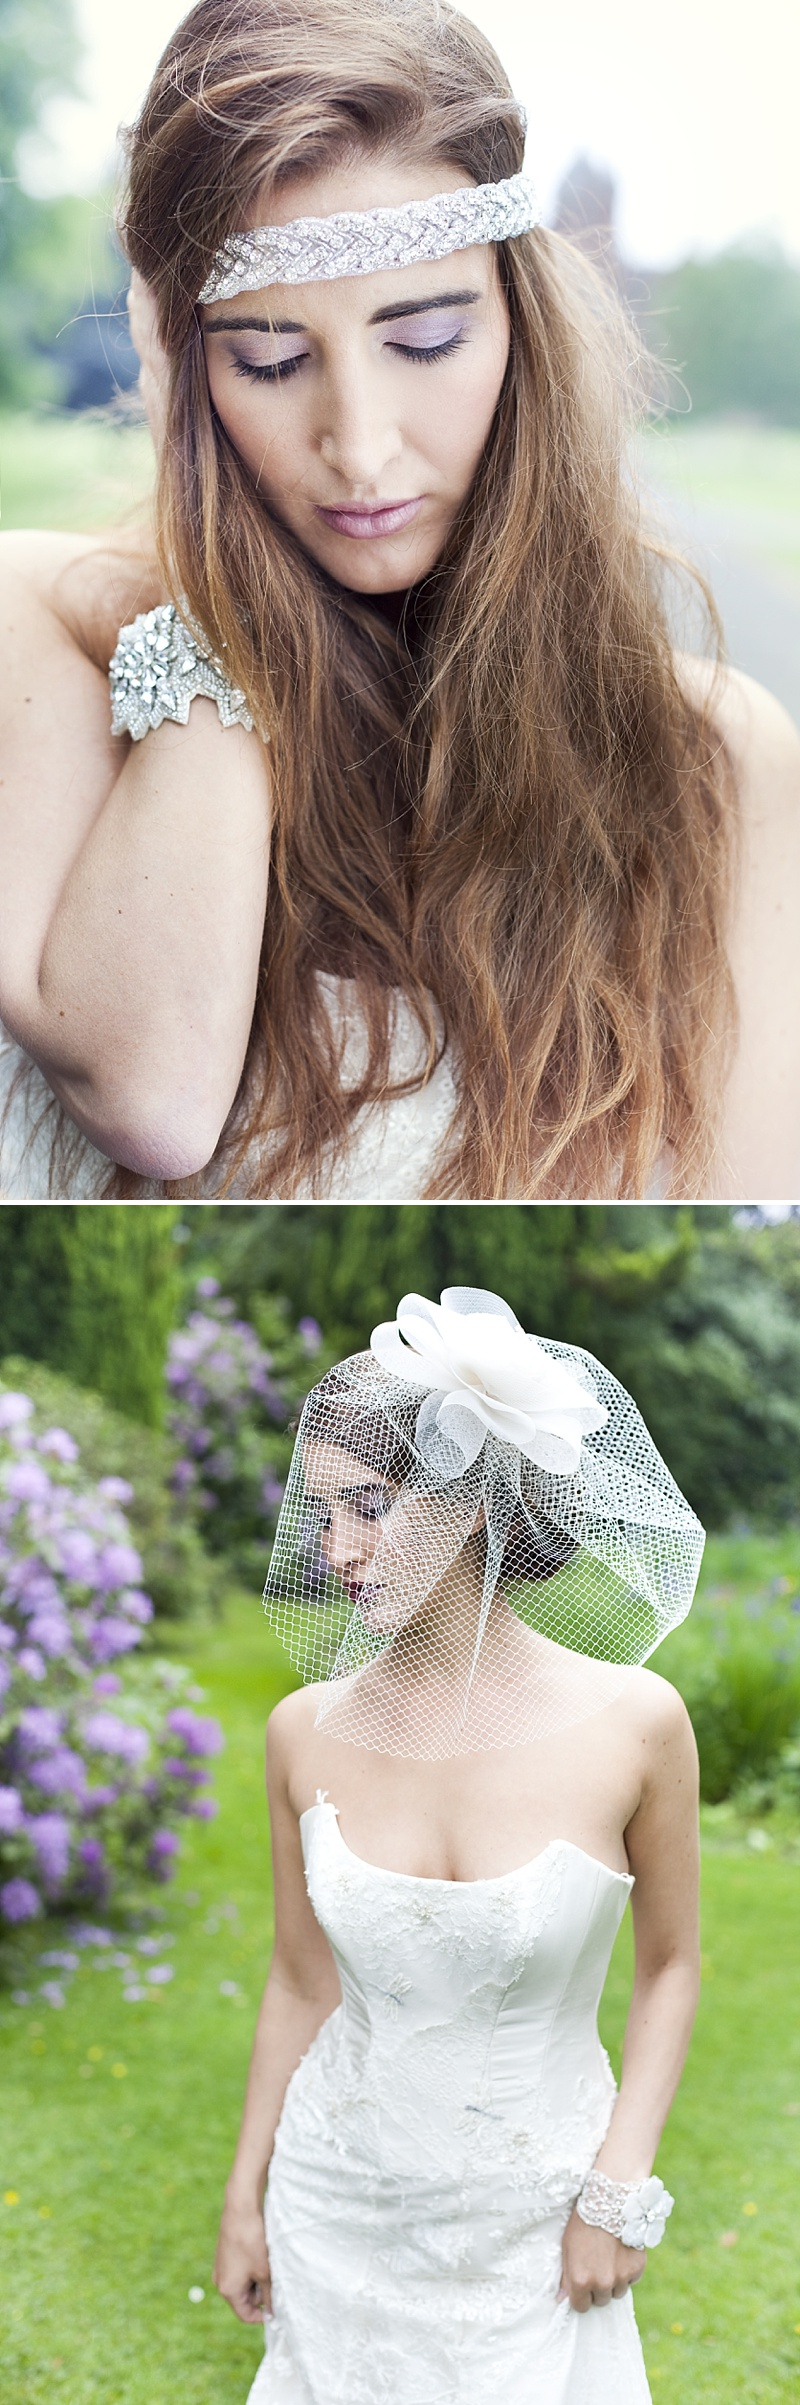 Inspiration Shoot Featuring Donna Crain Headpieces With A Bridal Make Up Product Recommendations From Adele Rosie Make Up Artist Images By Cecelina Photography_0011